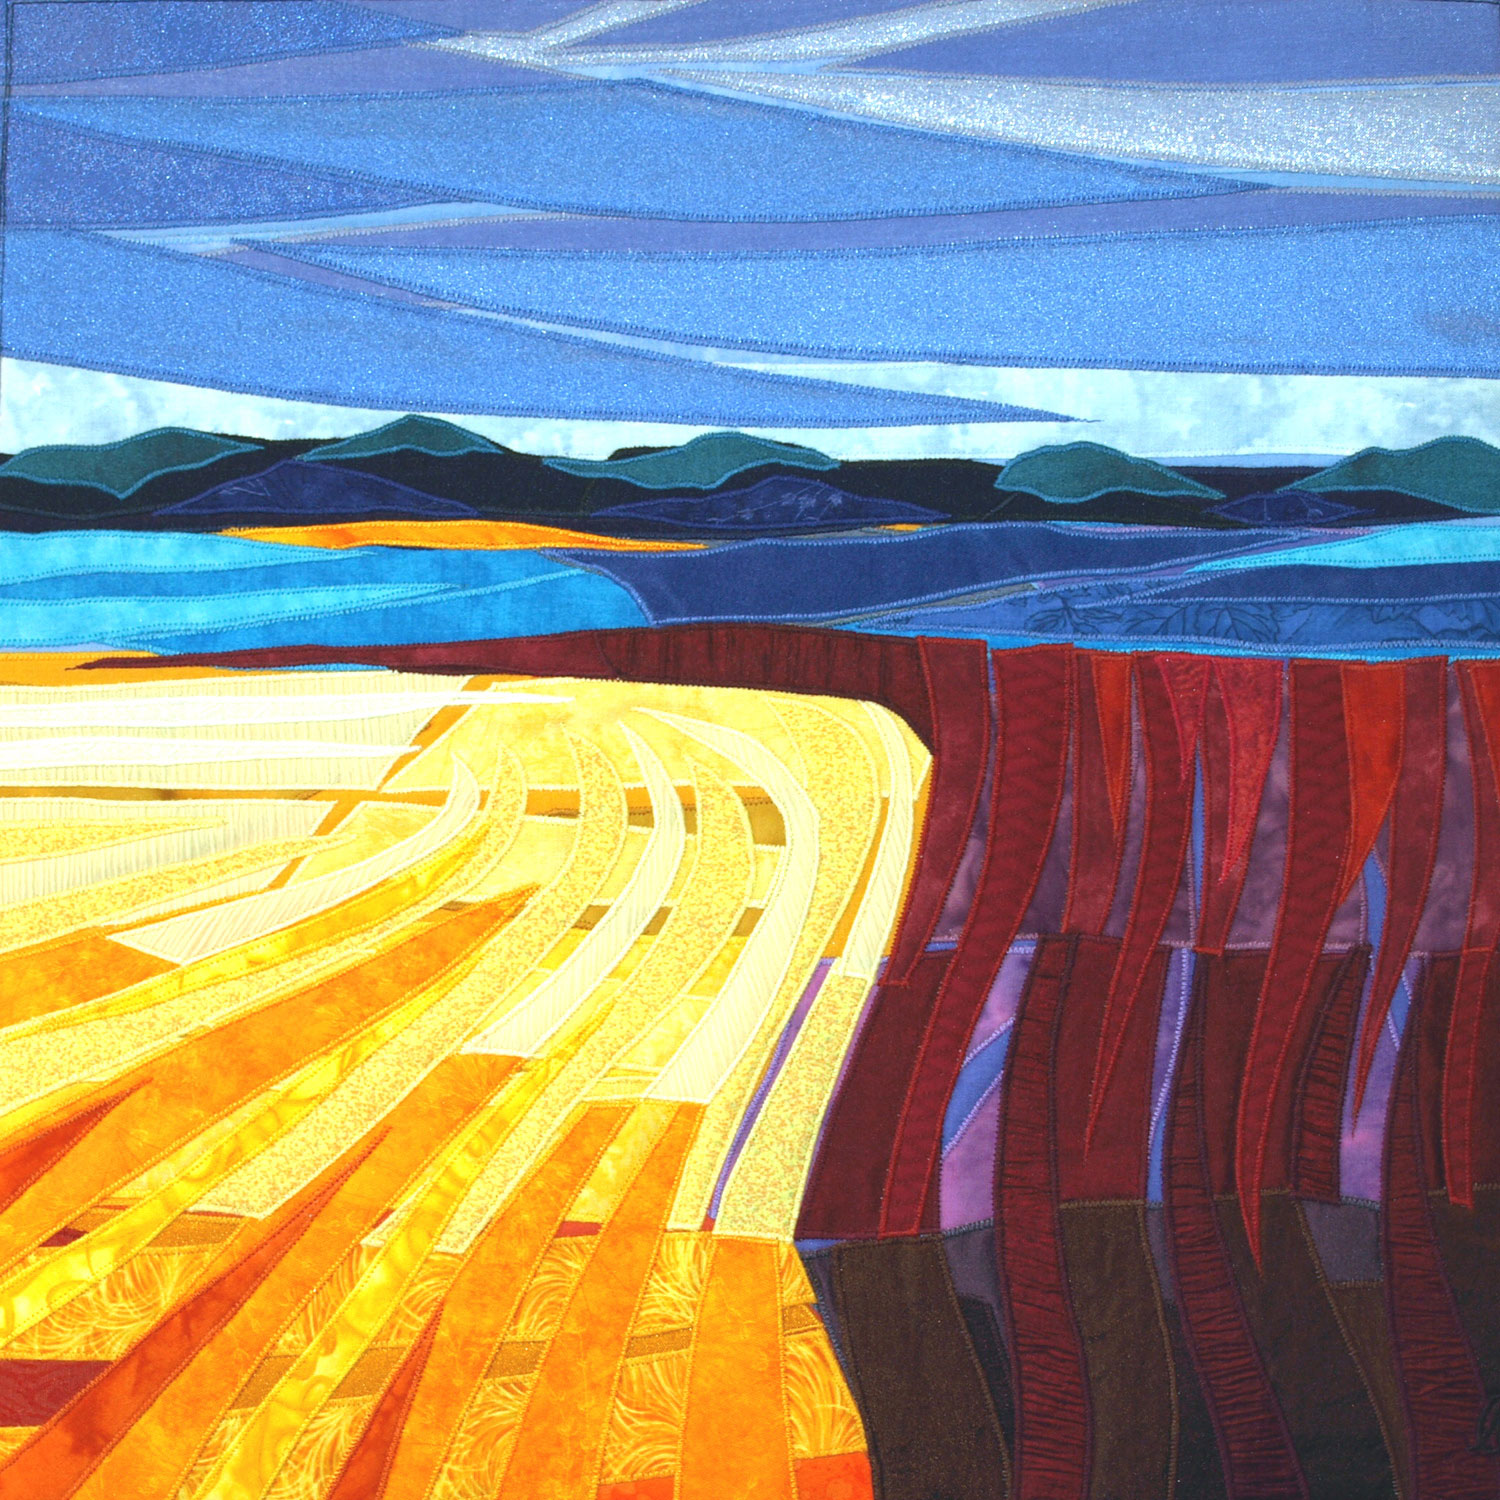 "Harvest, 2011, Fiber, 26 x 26"" Framed by Lisa & Lori Lubbesmeyer"